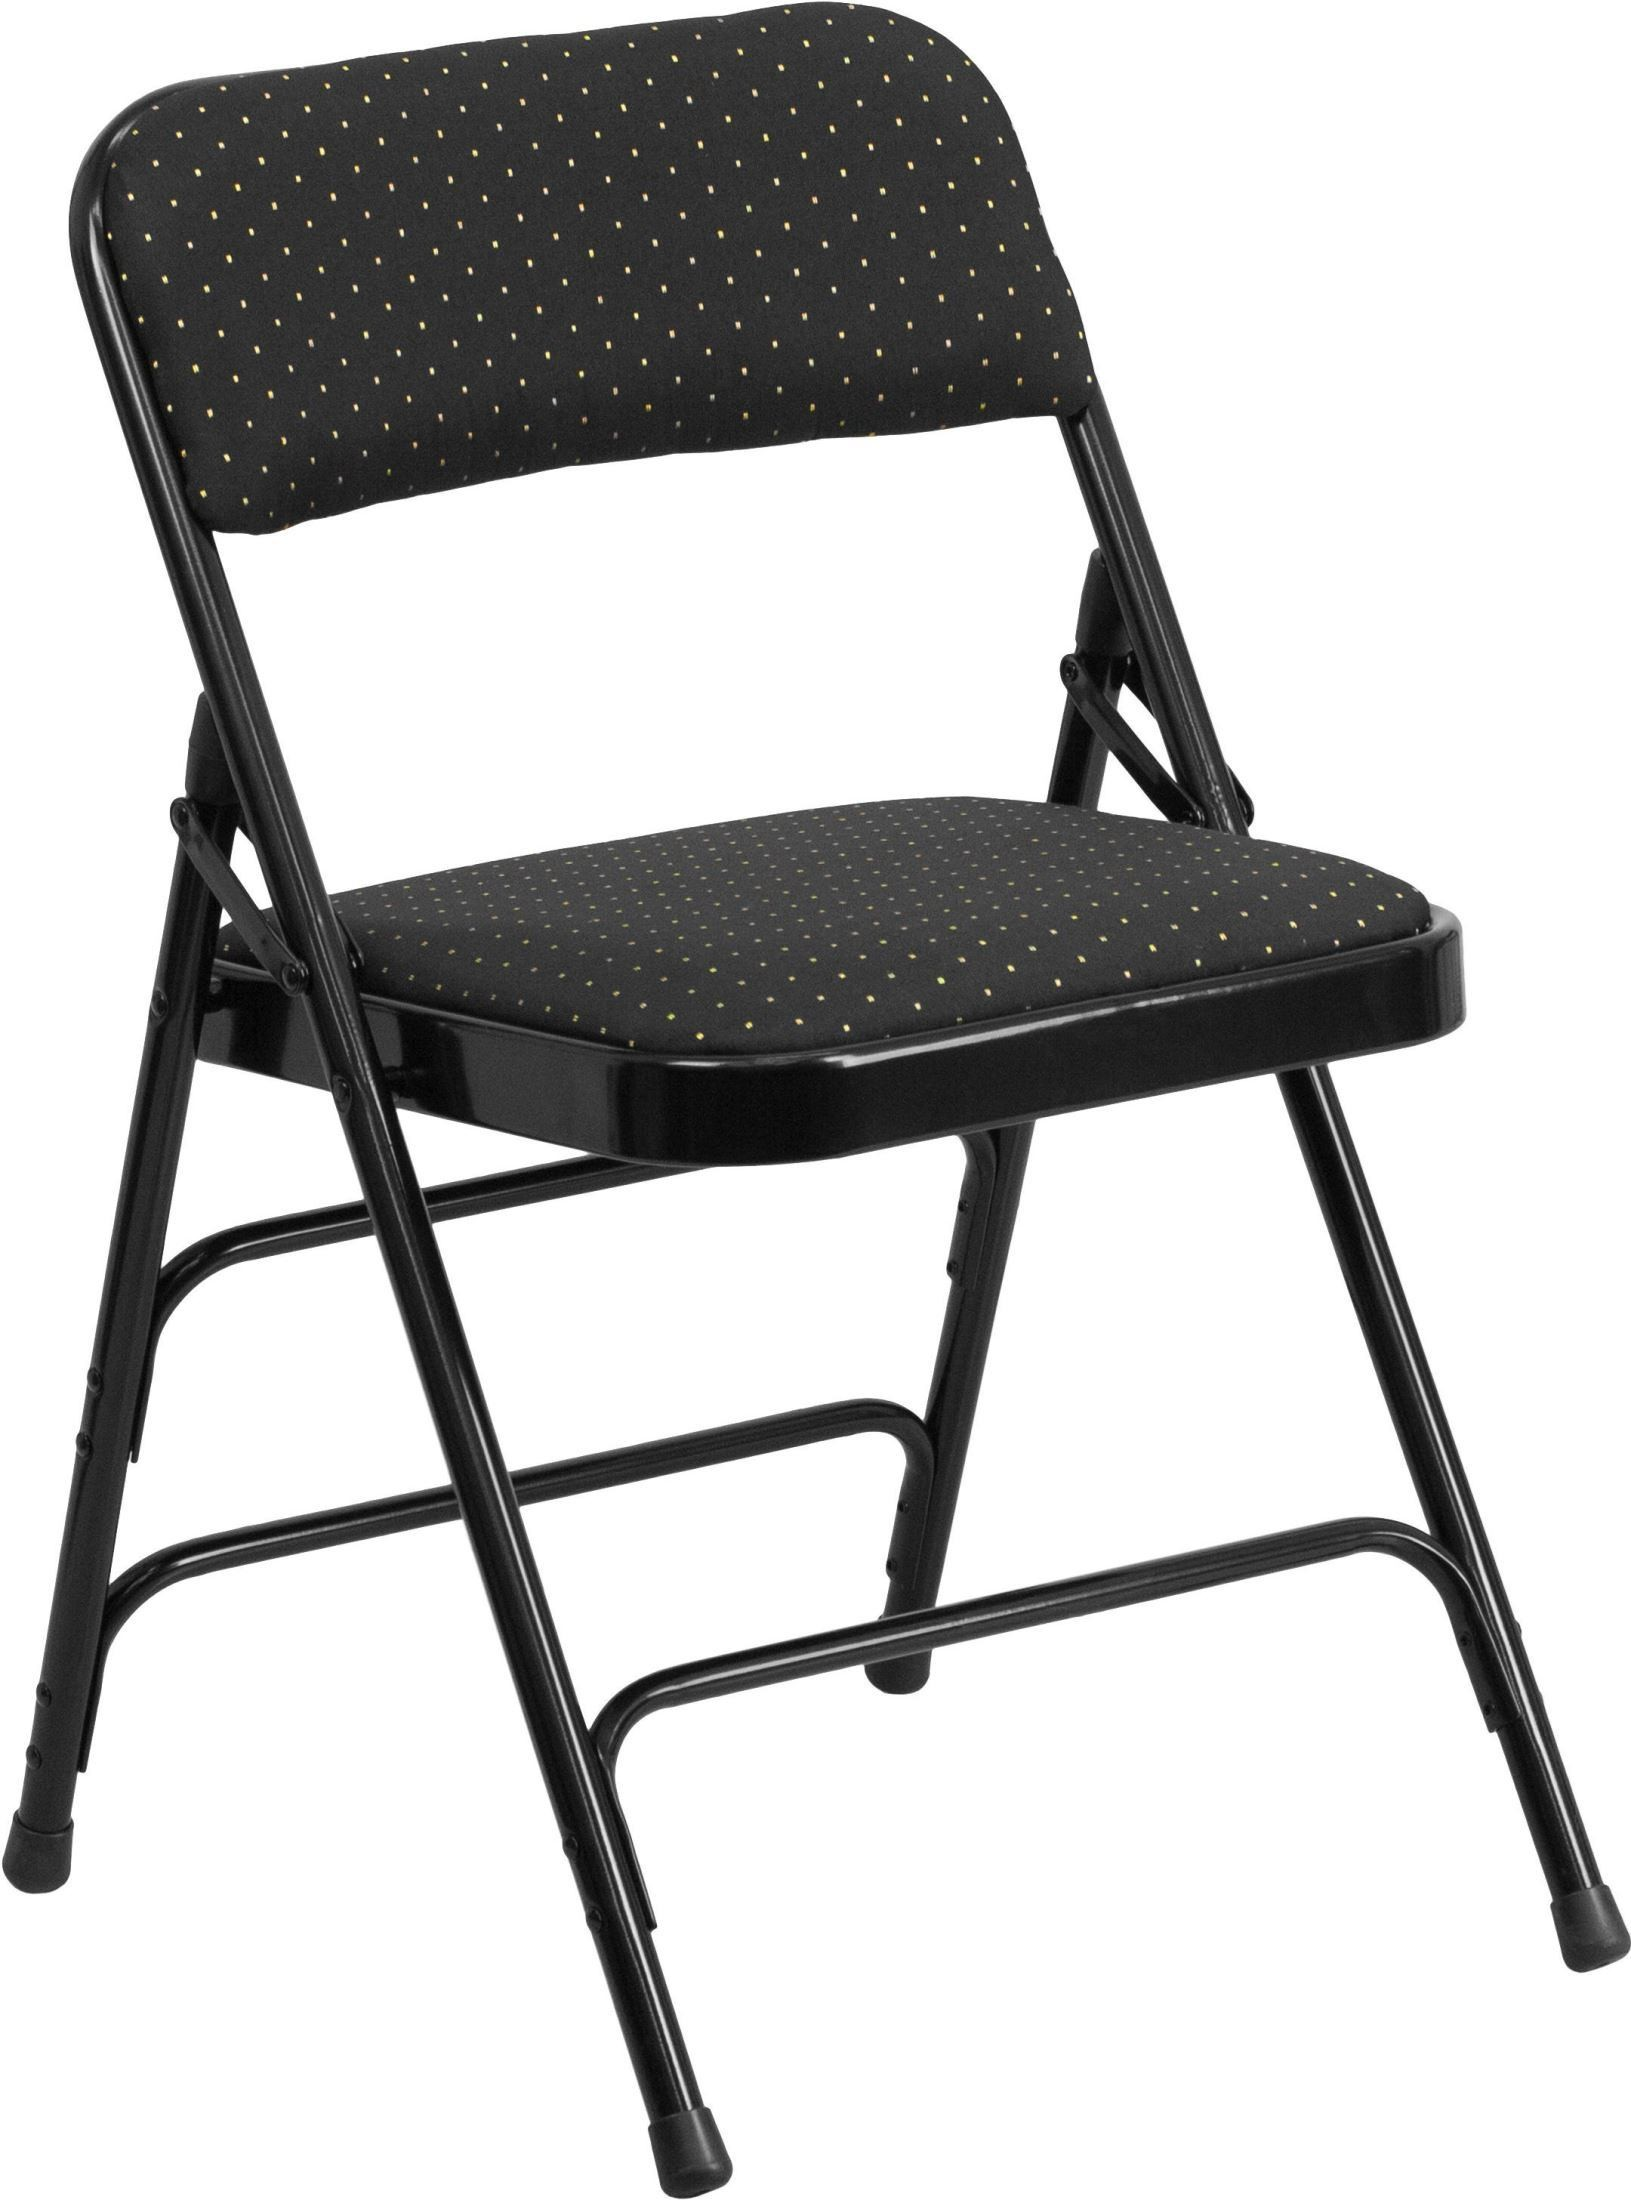 HERCULES Series Curved Triple Braced Black Patterned Metal Folding Chair AW